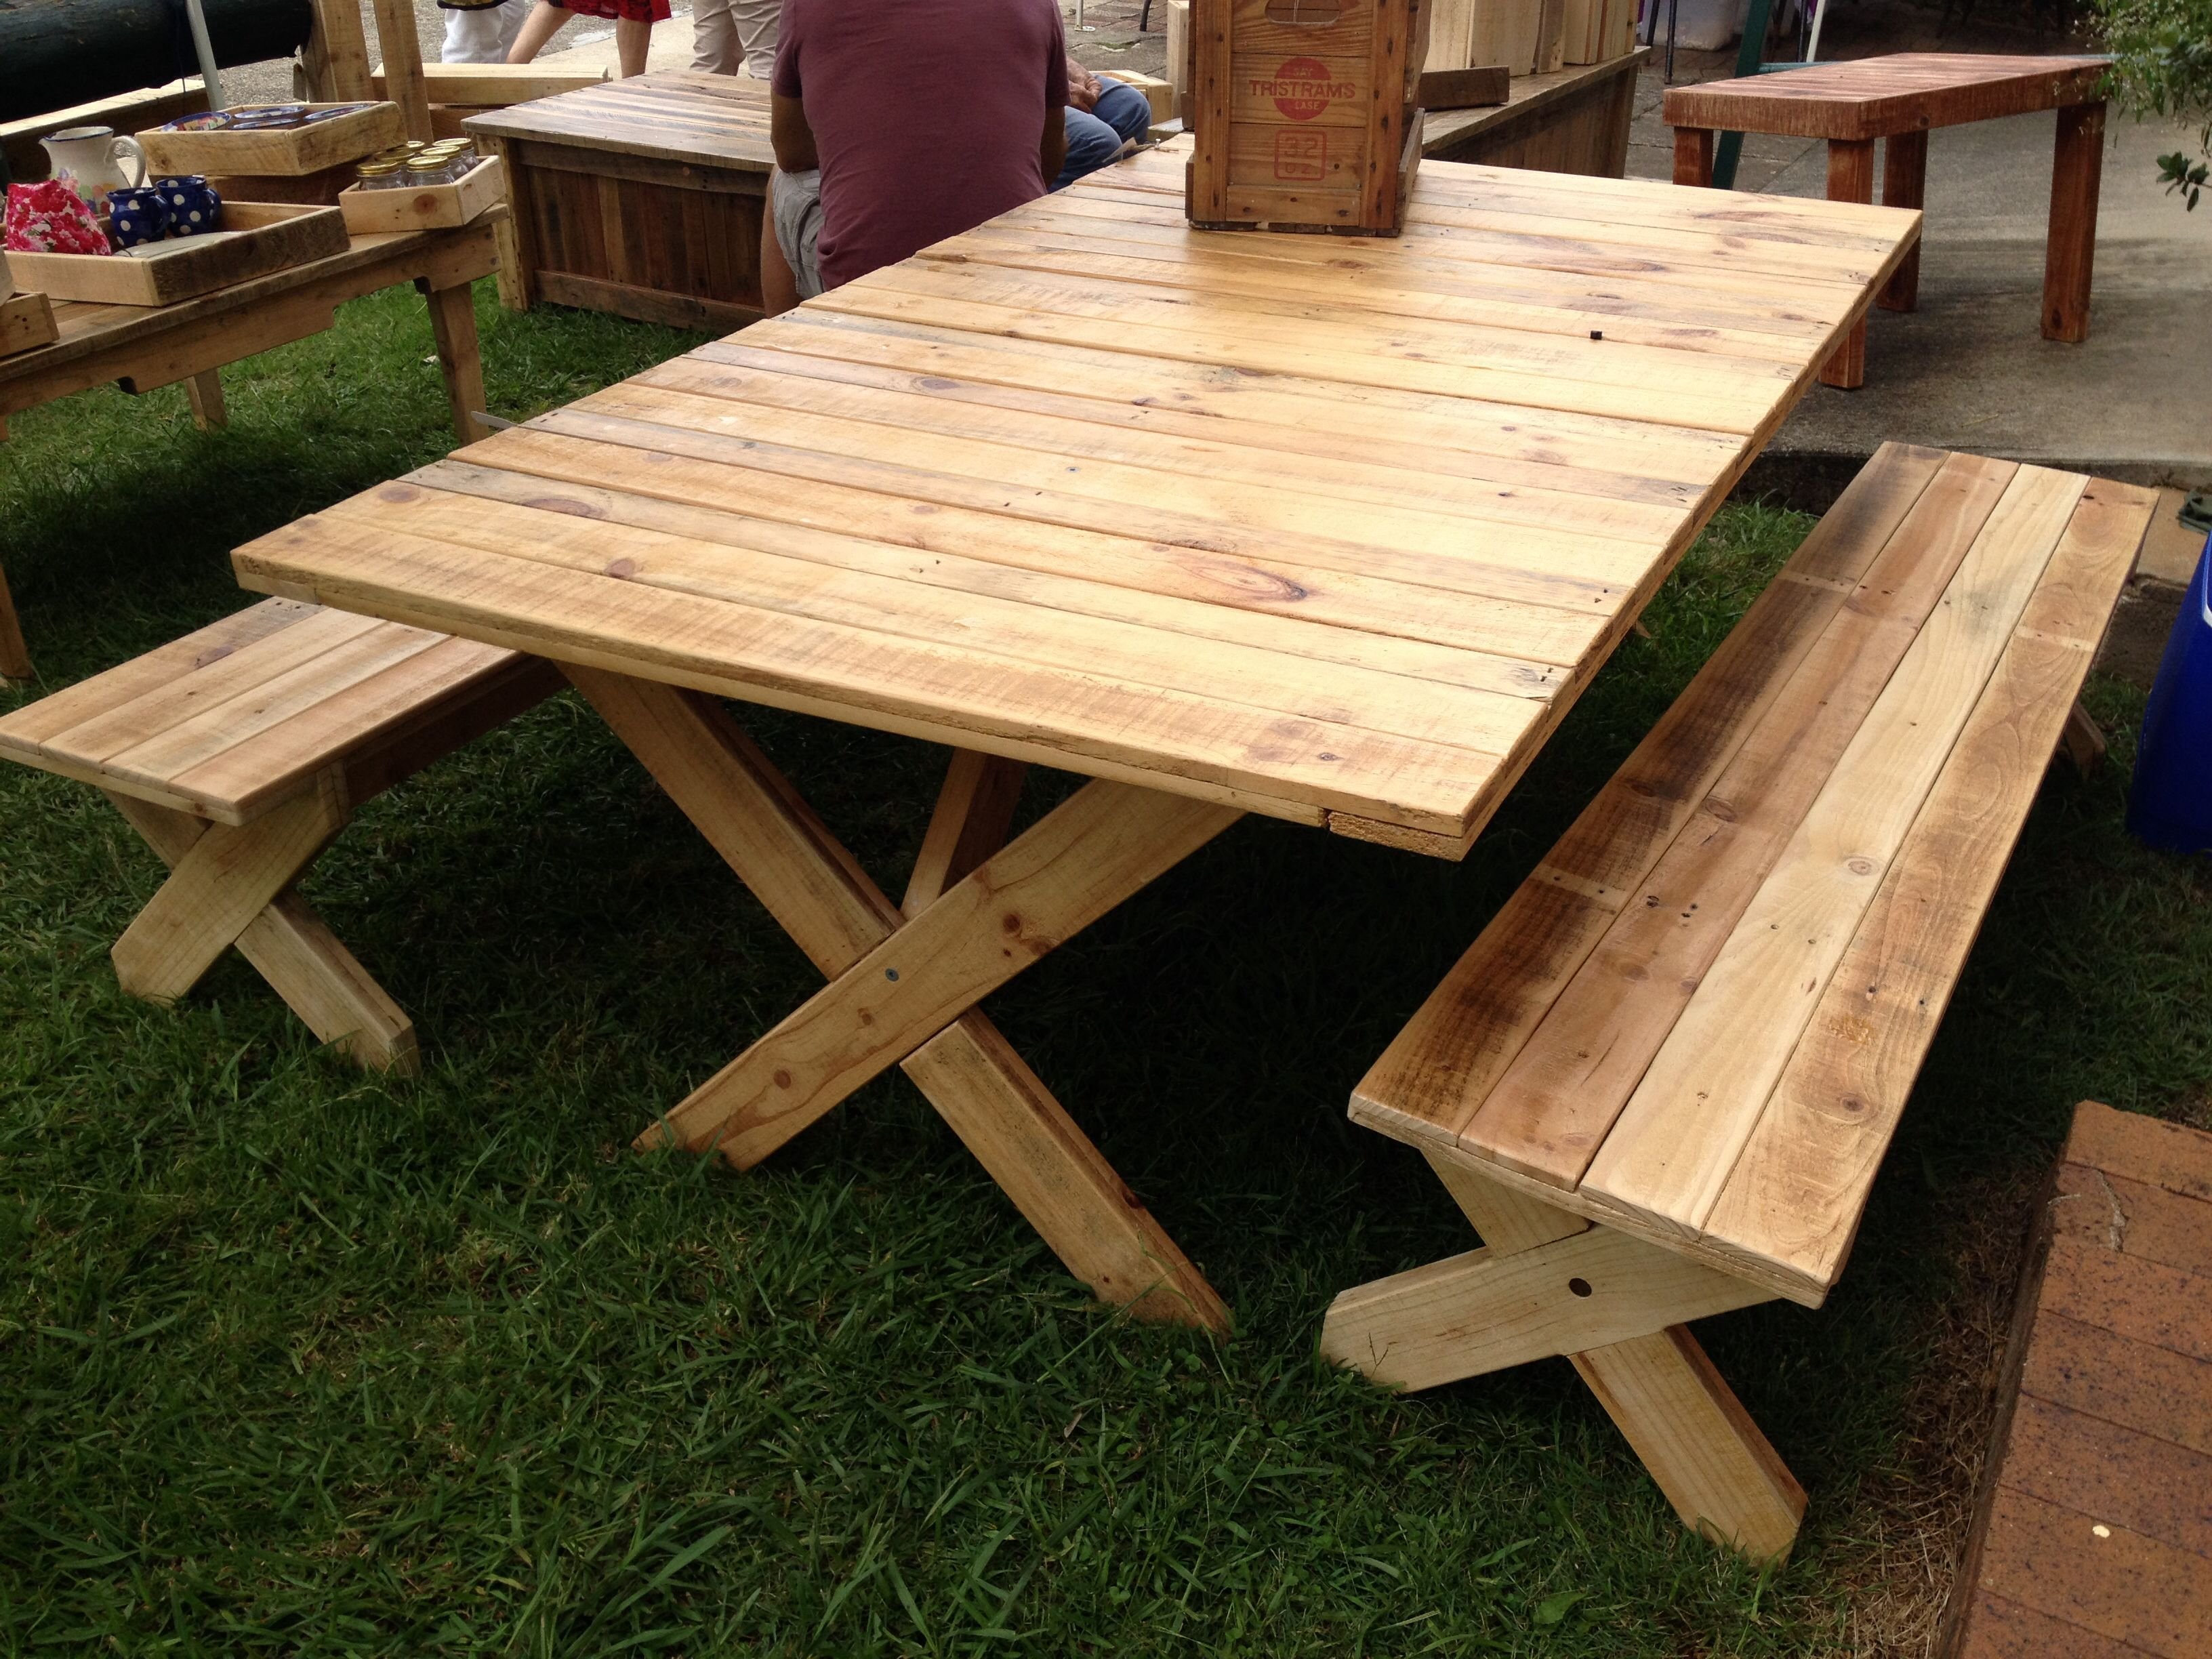 Diy Furniture - Friend Amazing Picnic Table